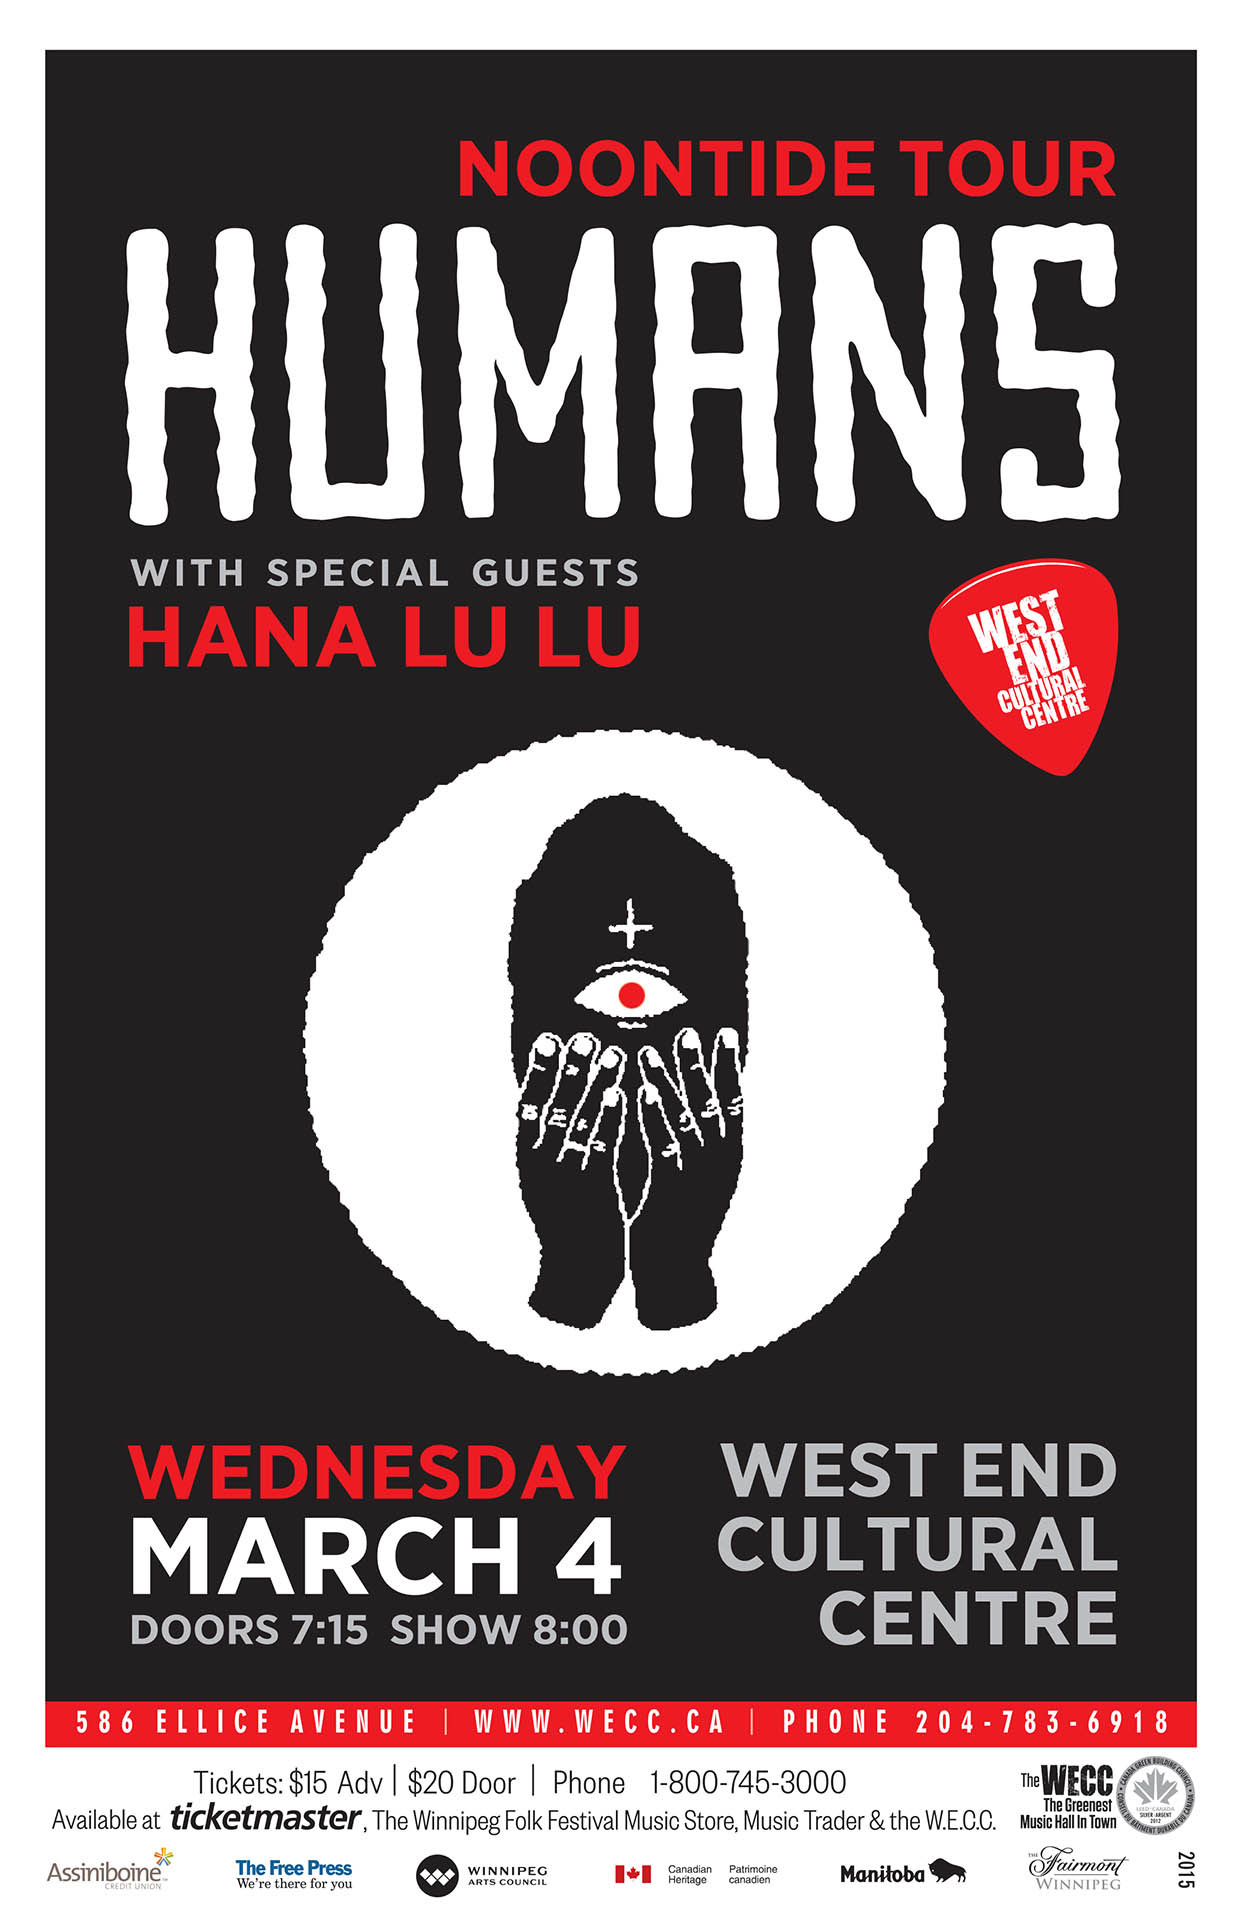 Noontide Tour Humans - 2015